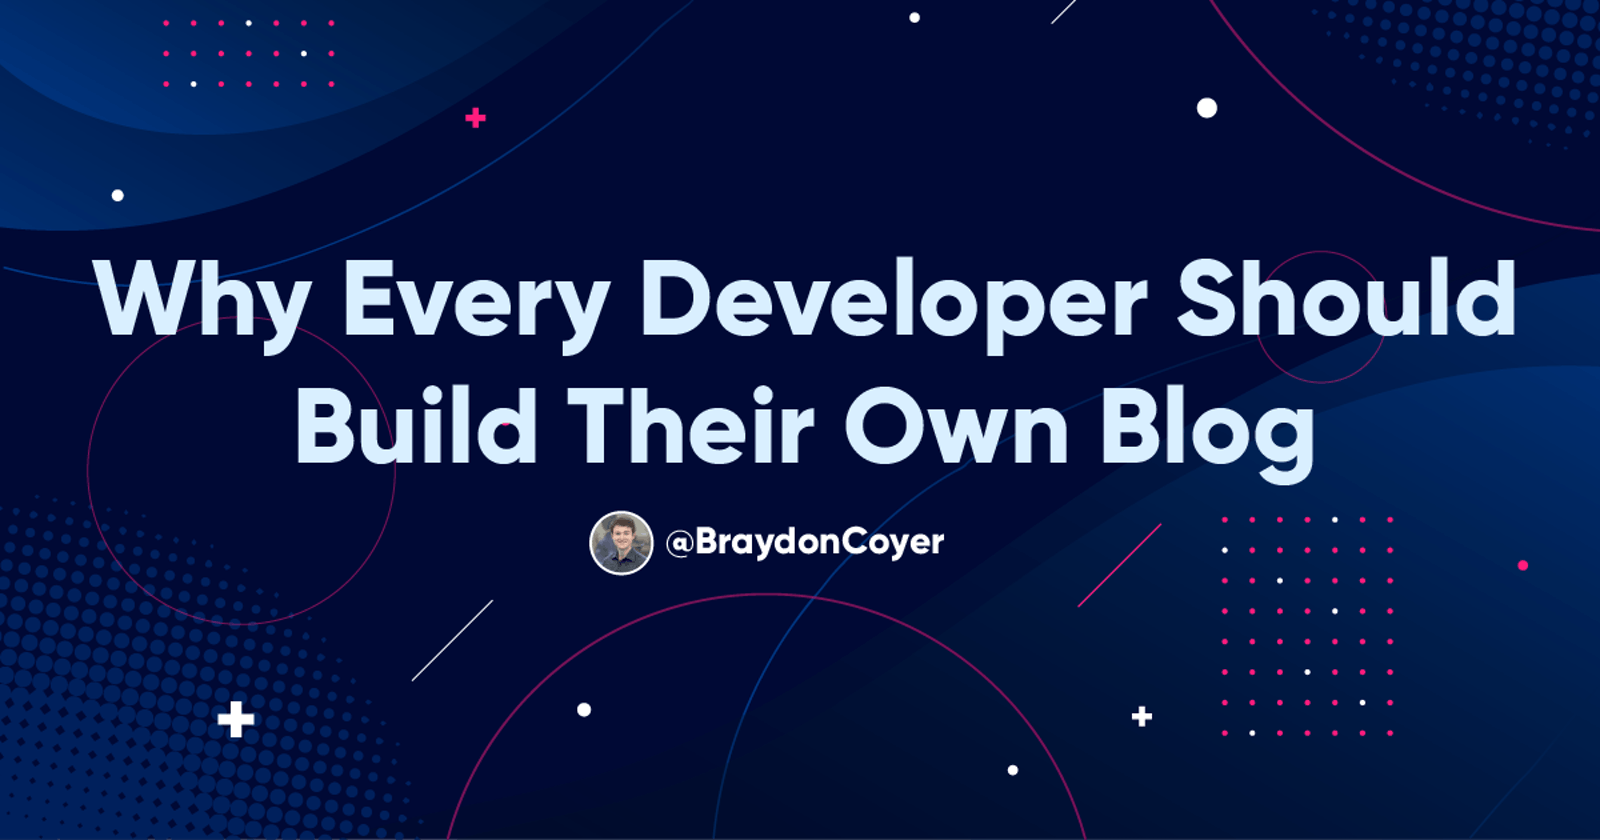 Why Every Developer Should Build Their Own Blog